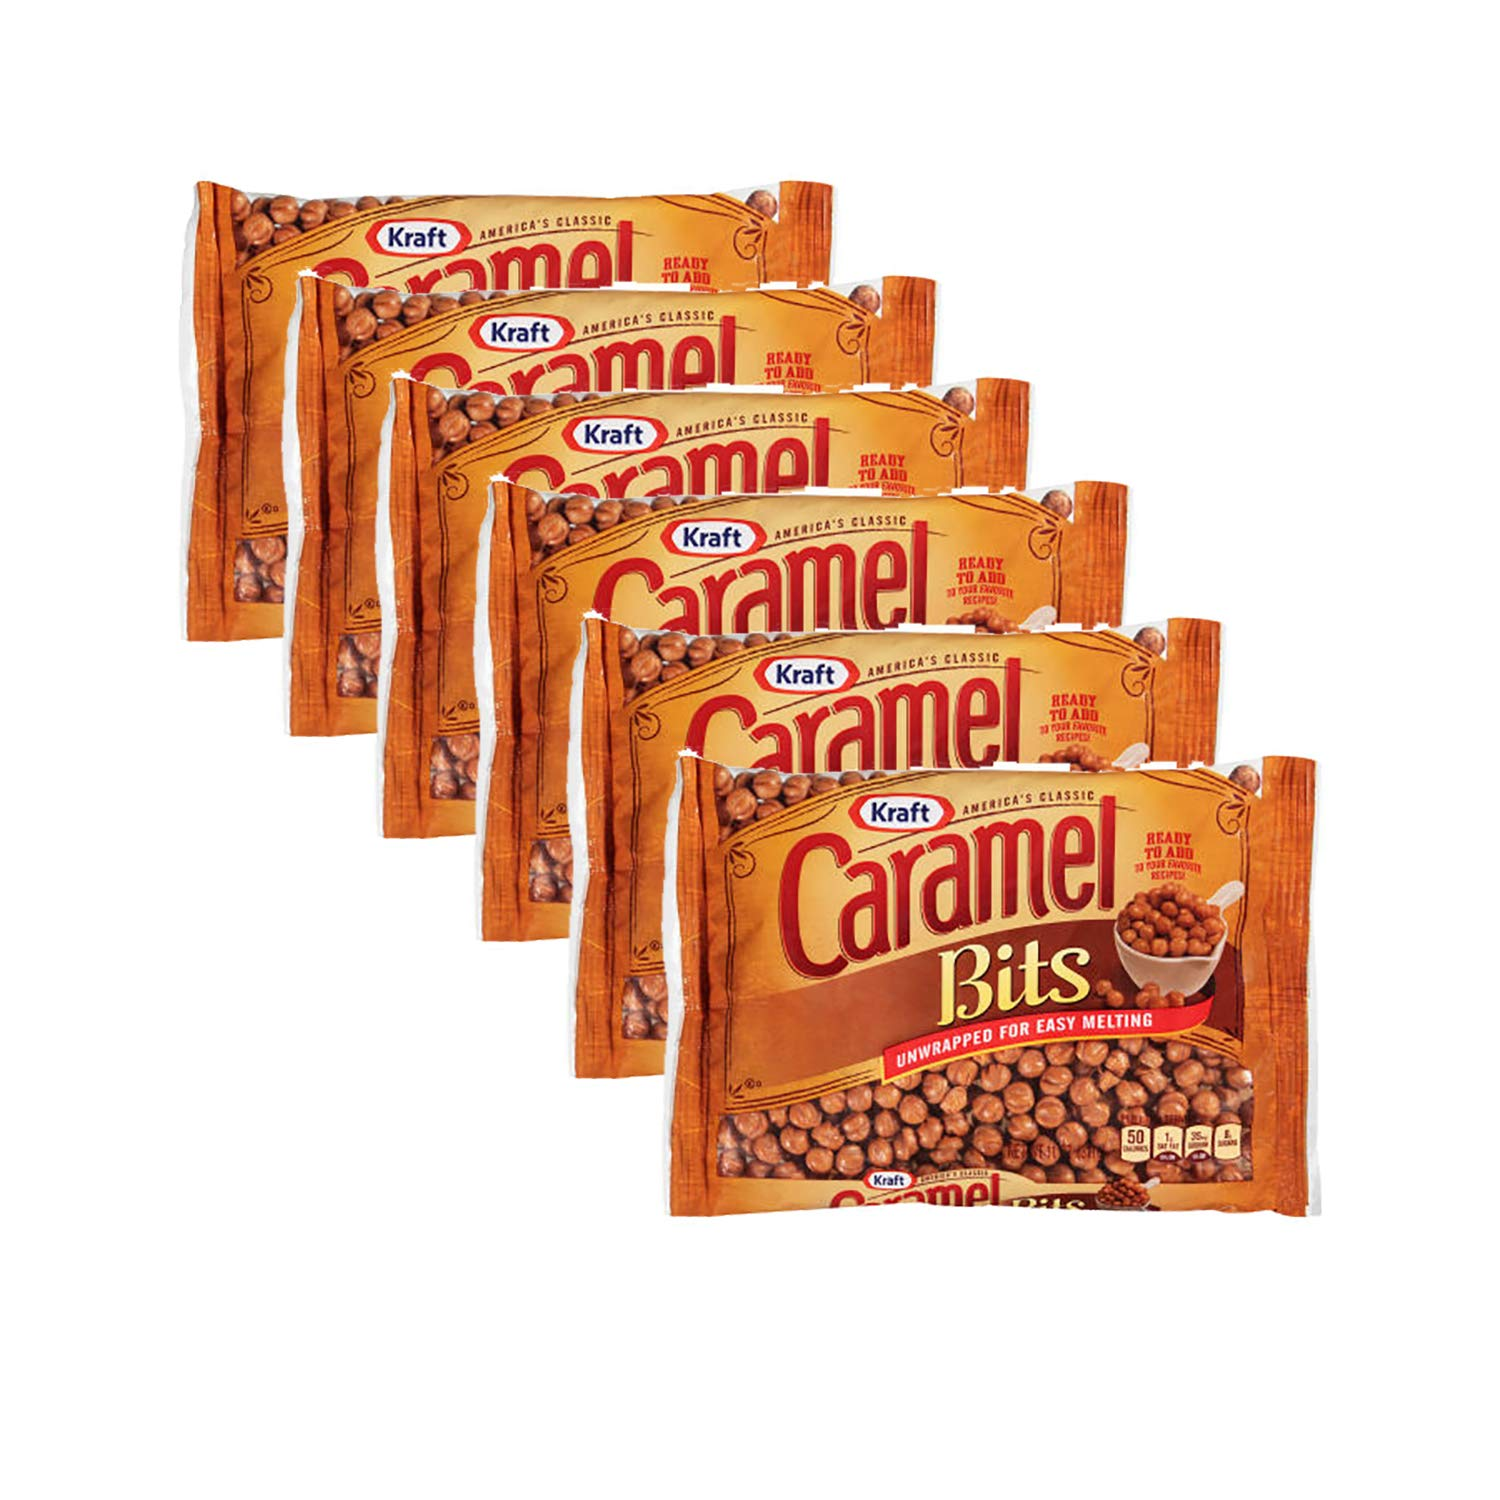 Kraft Caramel Bits, 11oz Bag, 1 CT (PACK - 6)